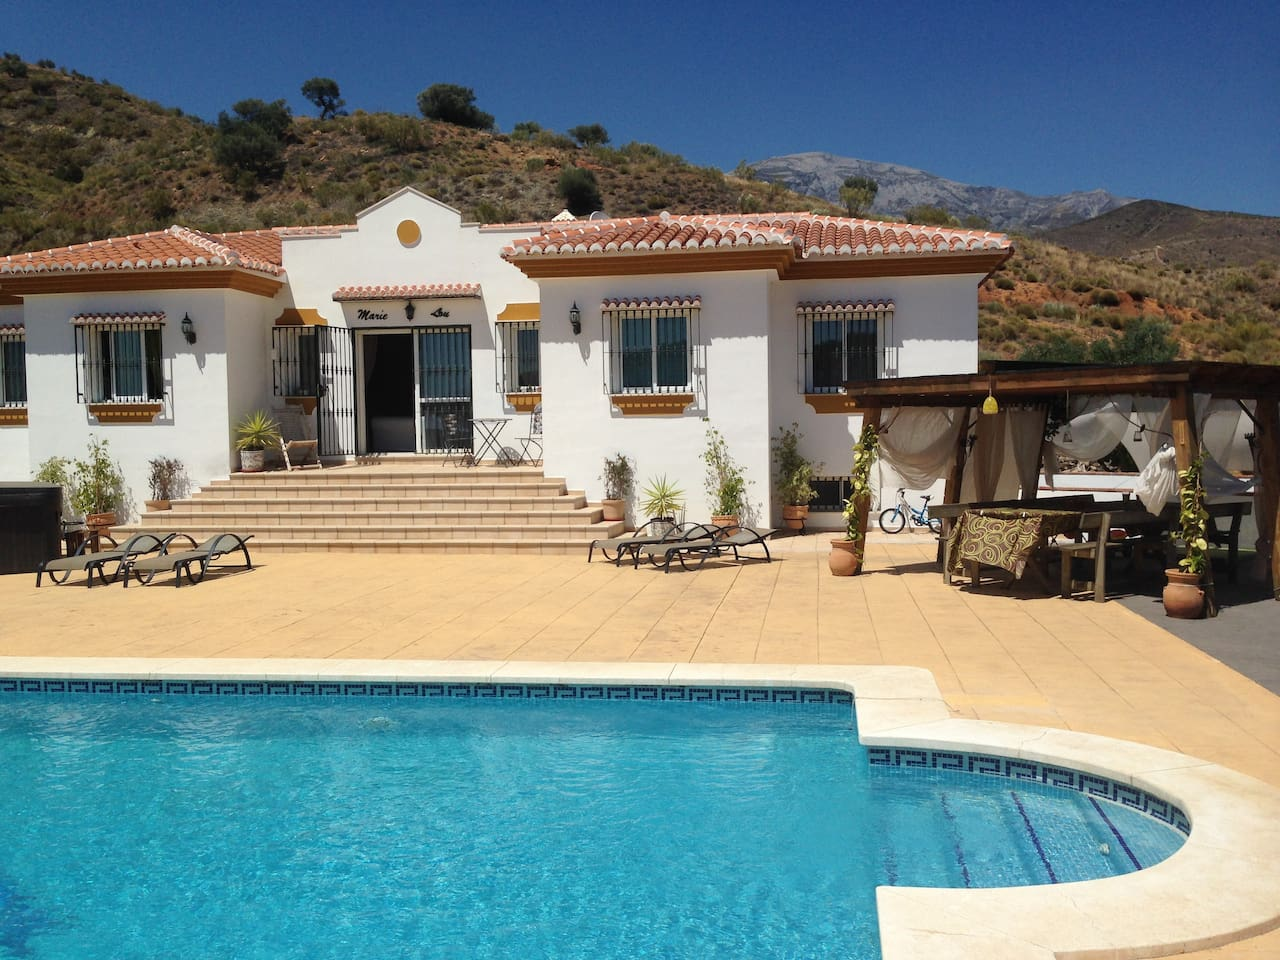 Villa in Andalusia - Houses for Rent in Malaga, Espagne, Spain